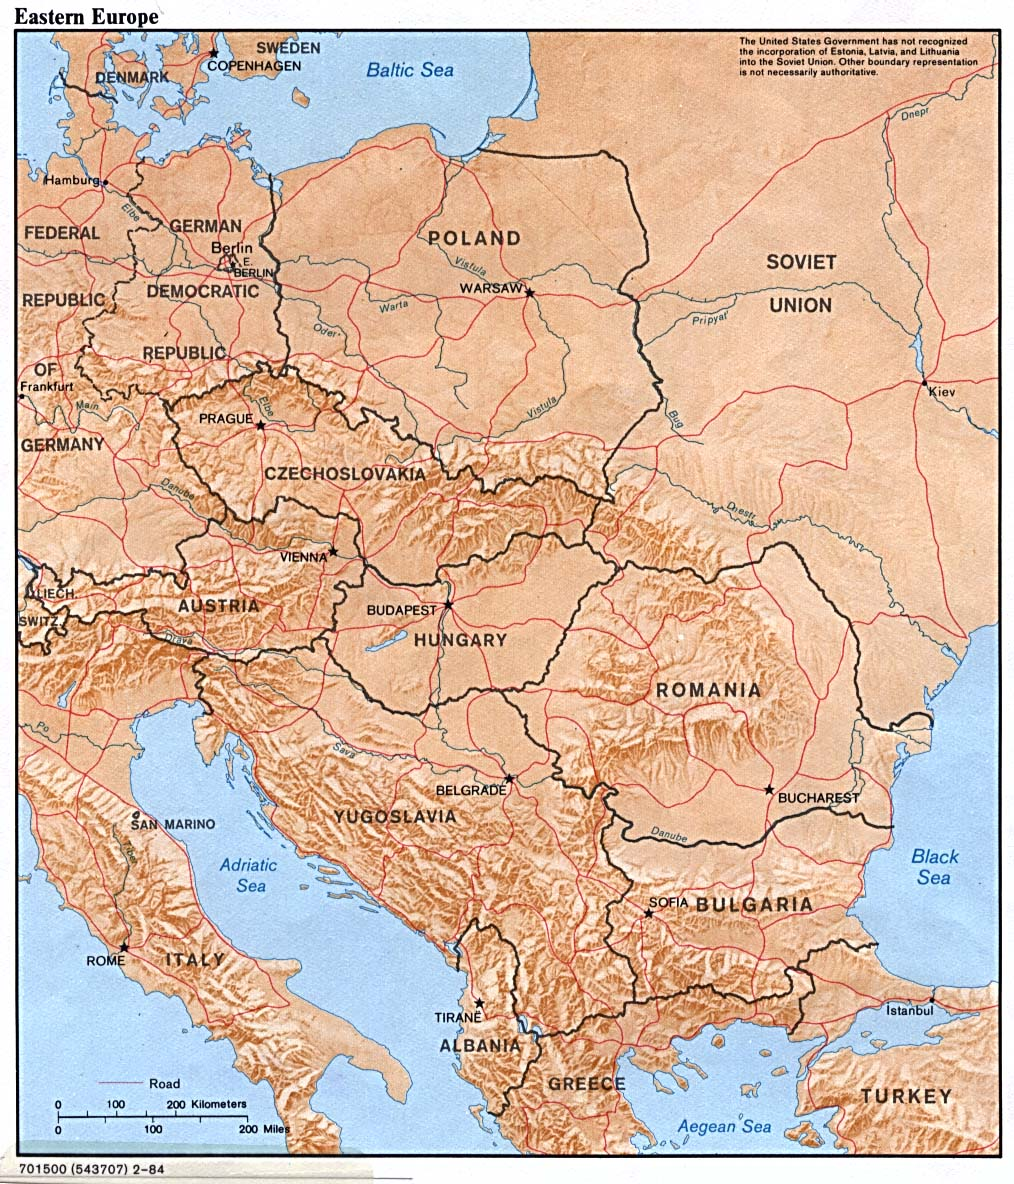 Eastern Europe physical map 1984